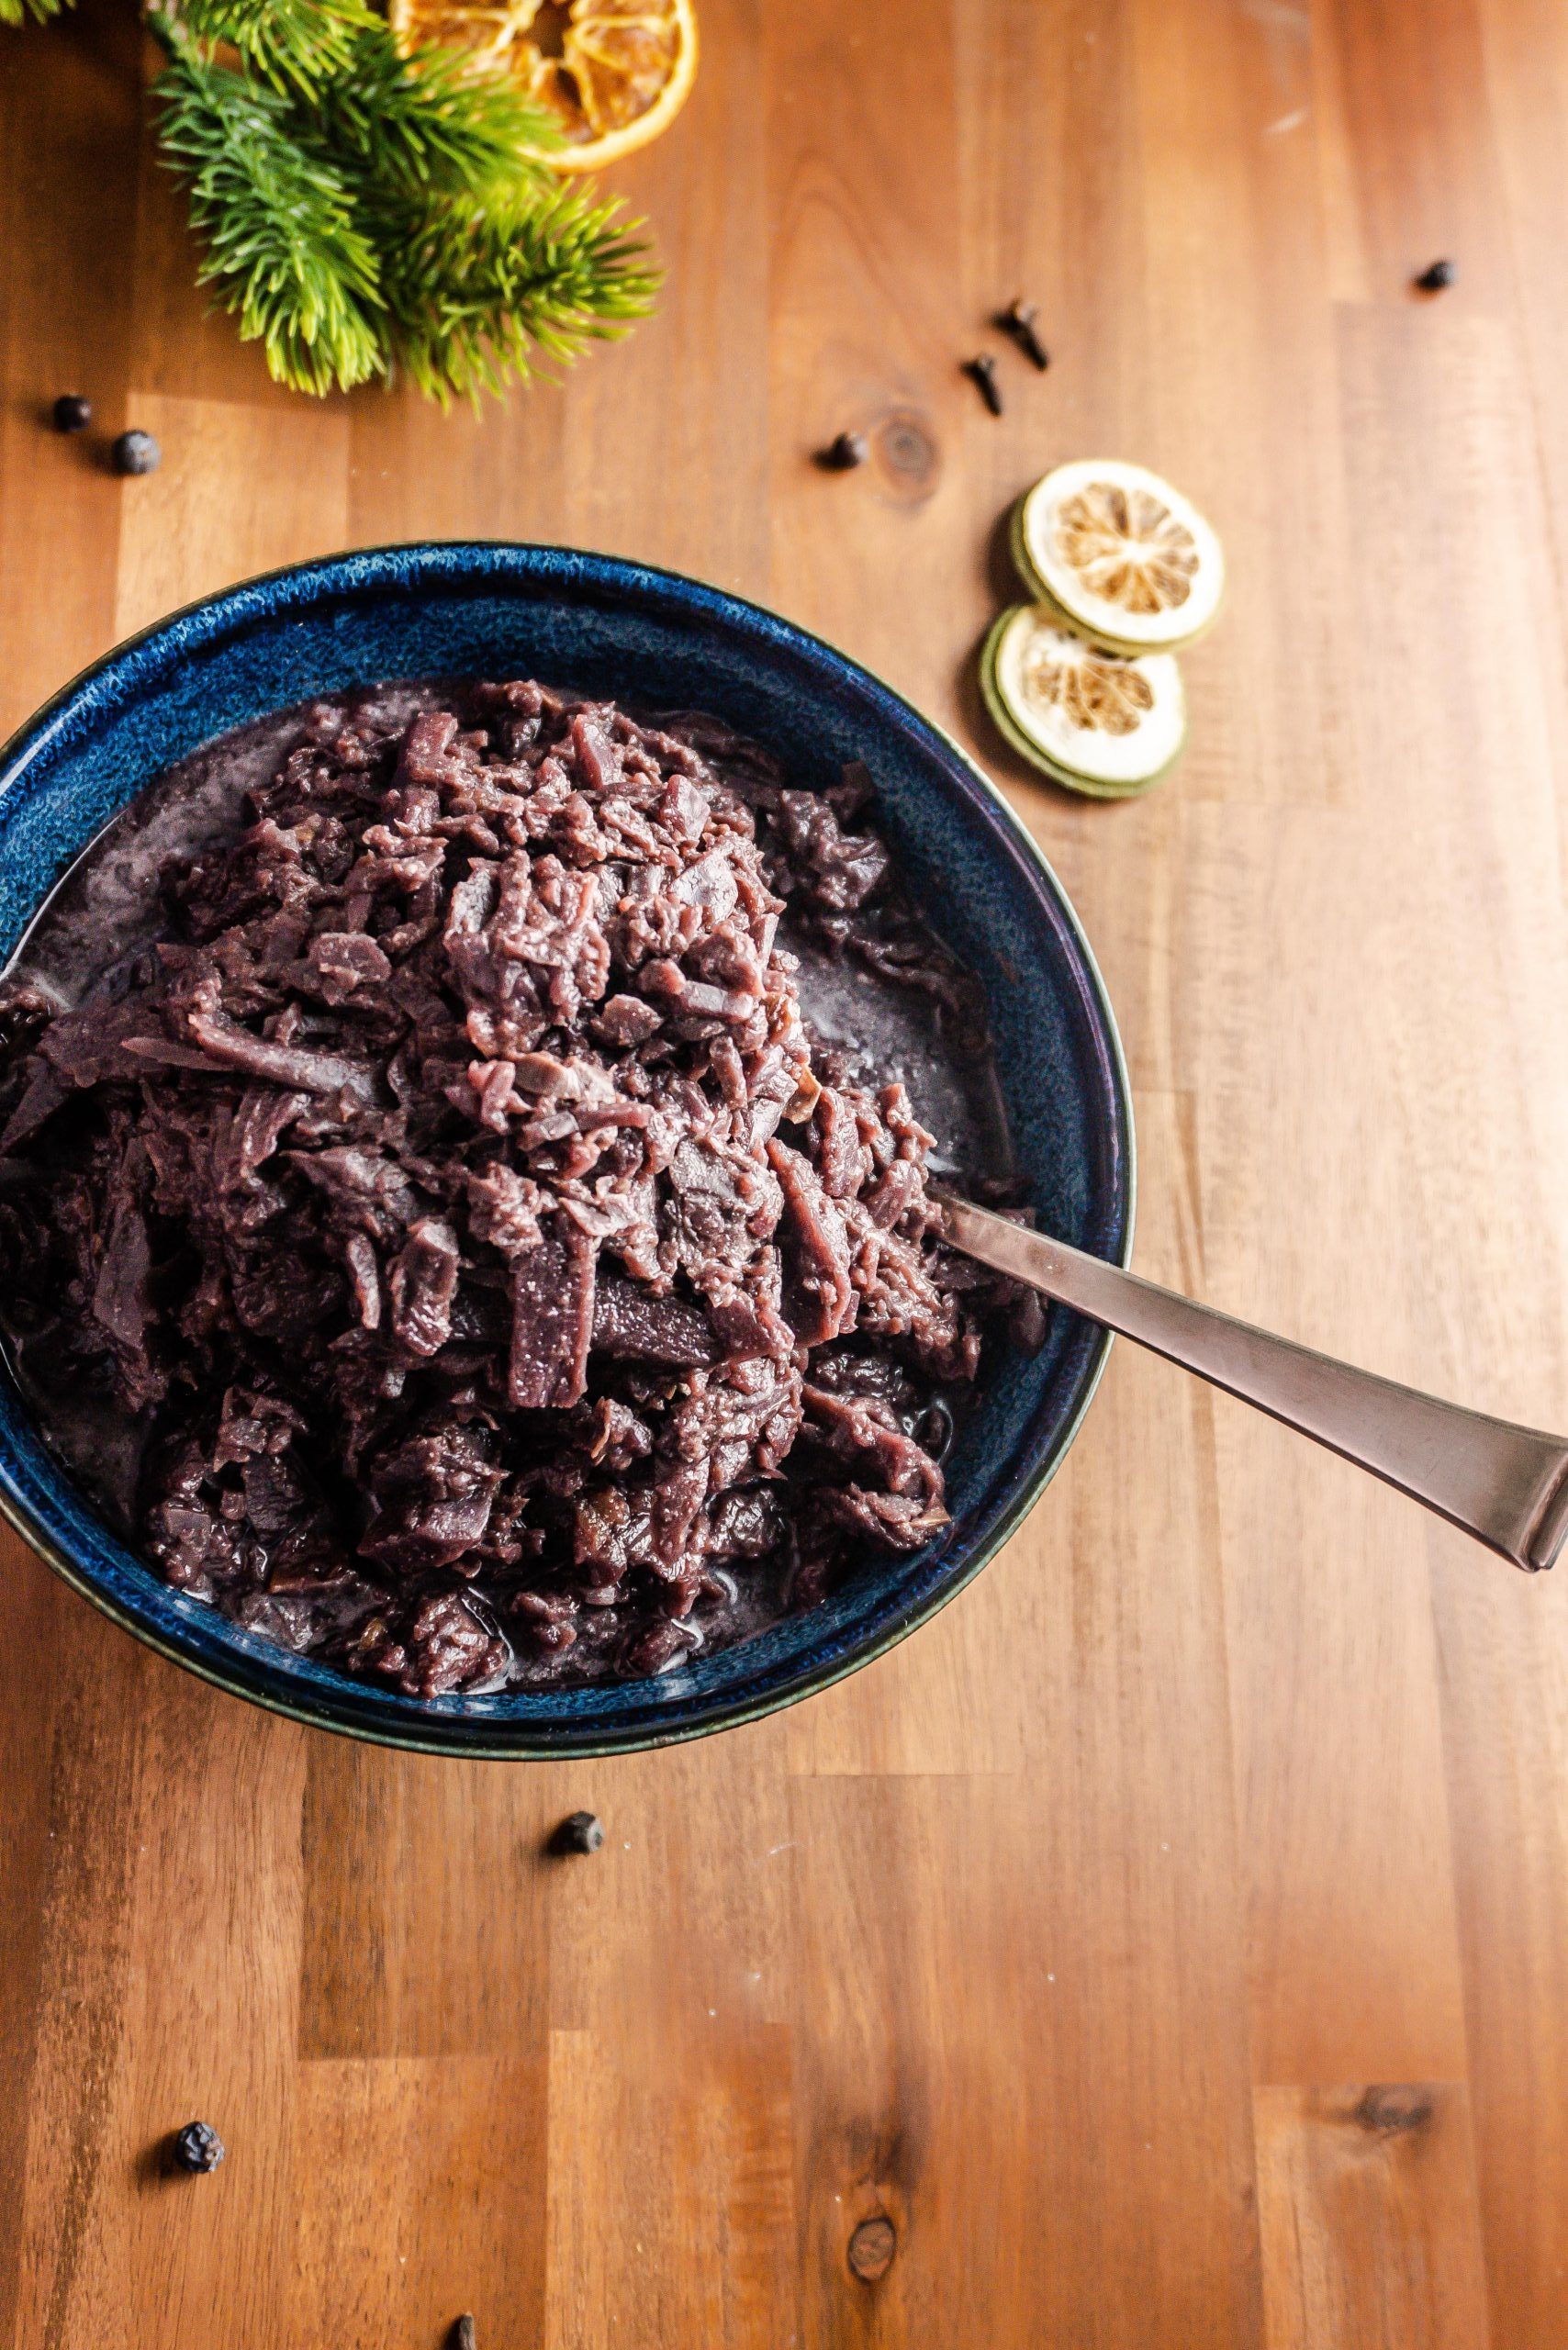 German Red Cabbage (Rotkohl) in a blue bowl with a spoon on a dark wooden background with dried sliced orange slices, pine cones, cloves, and juniper berries as decoration